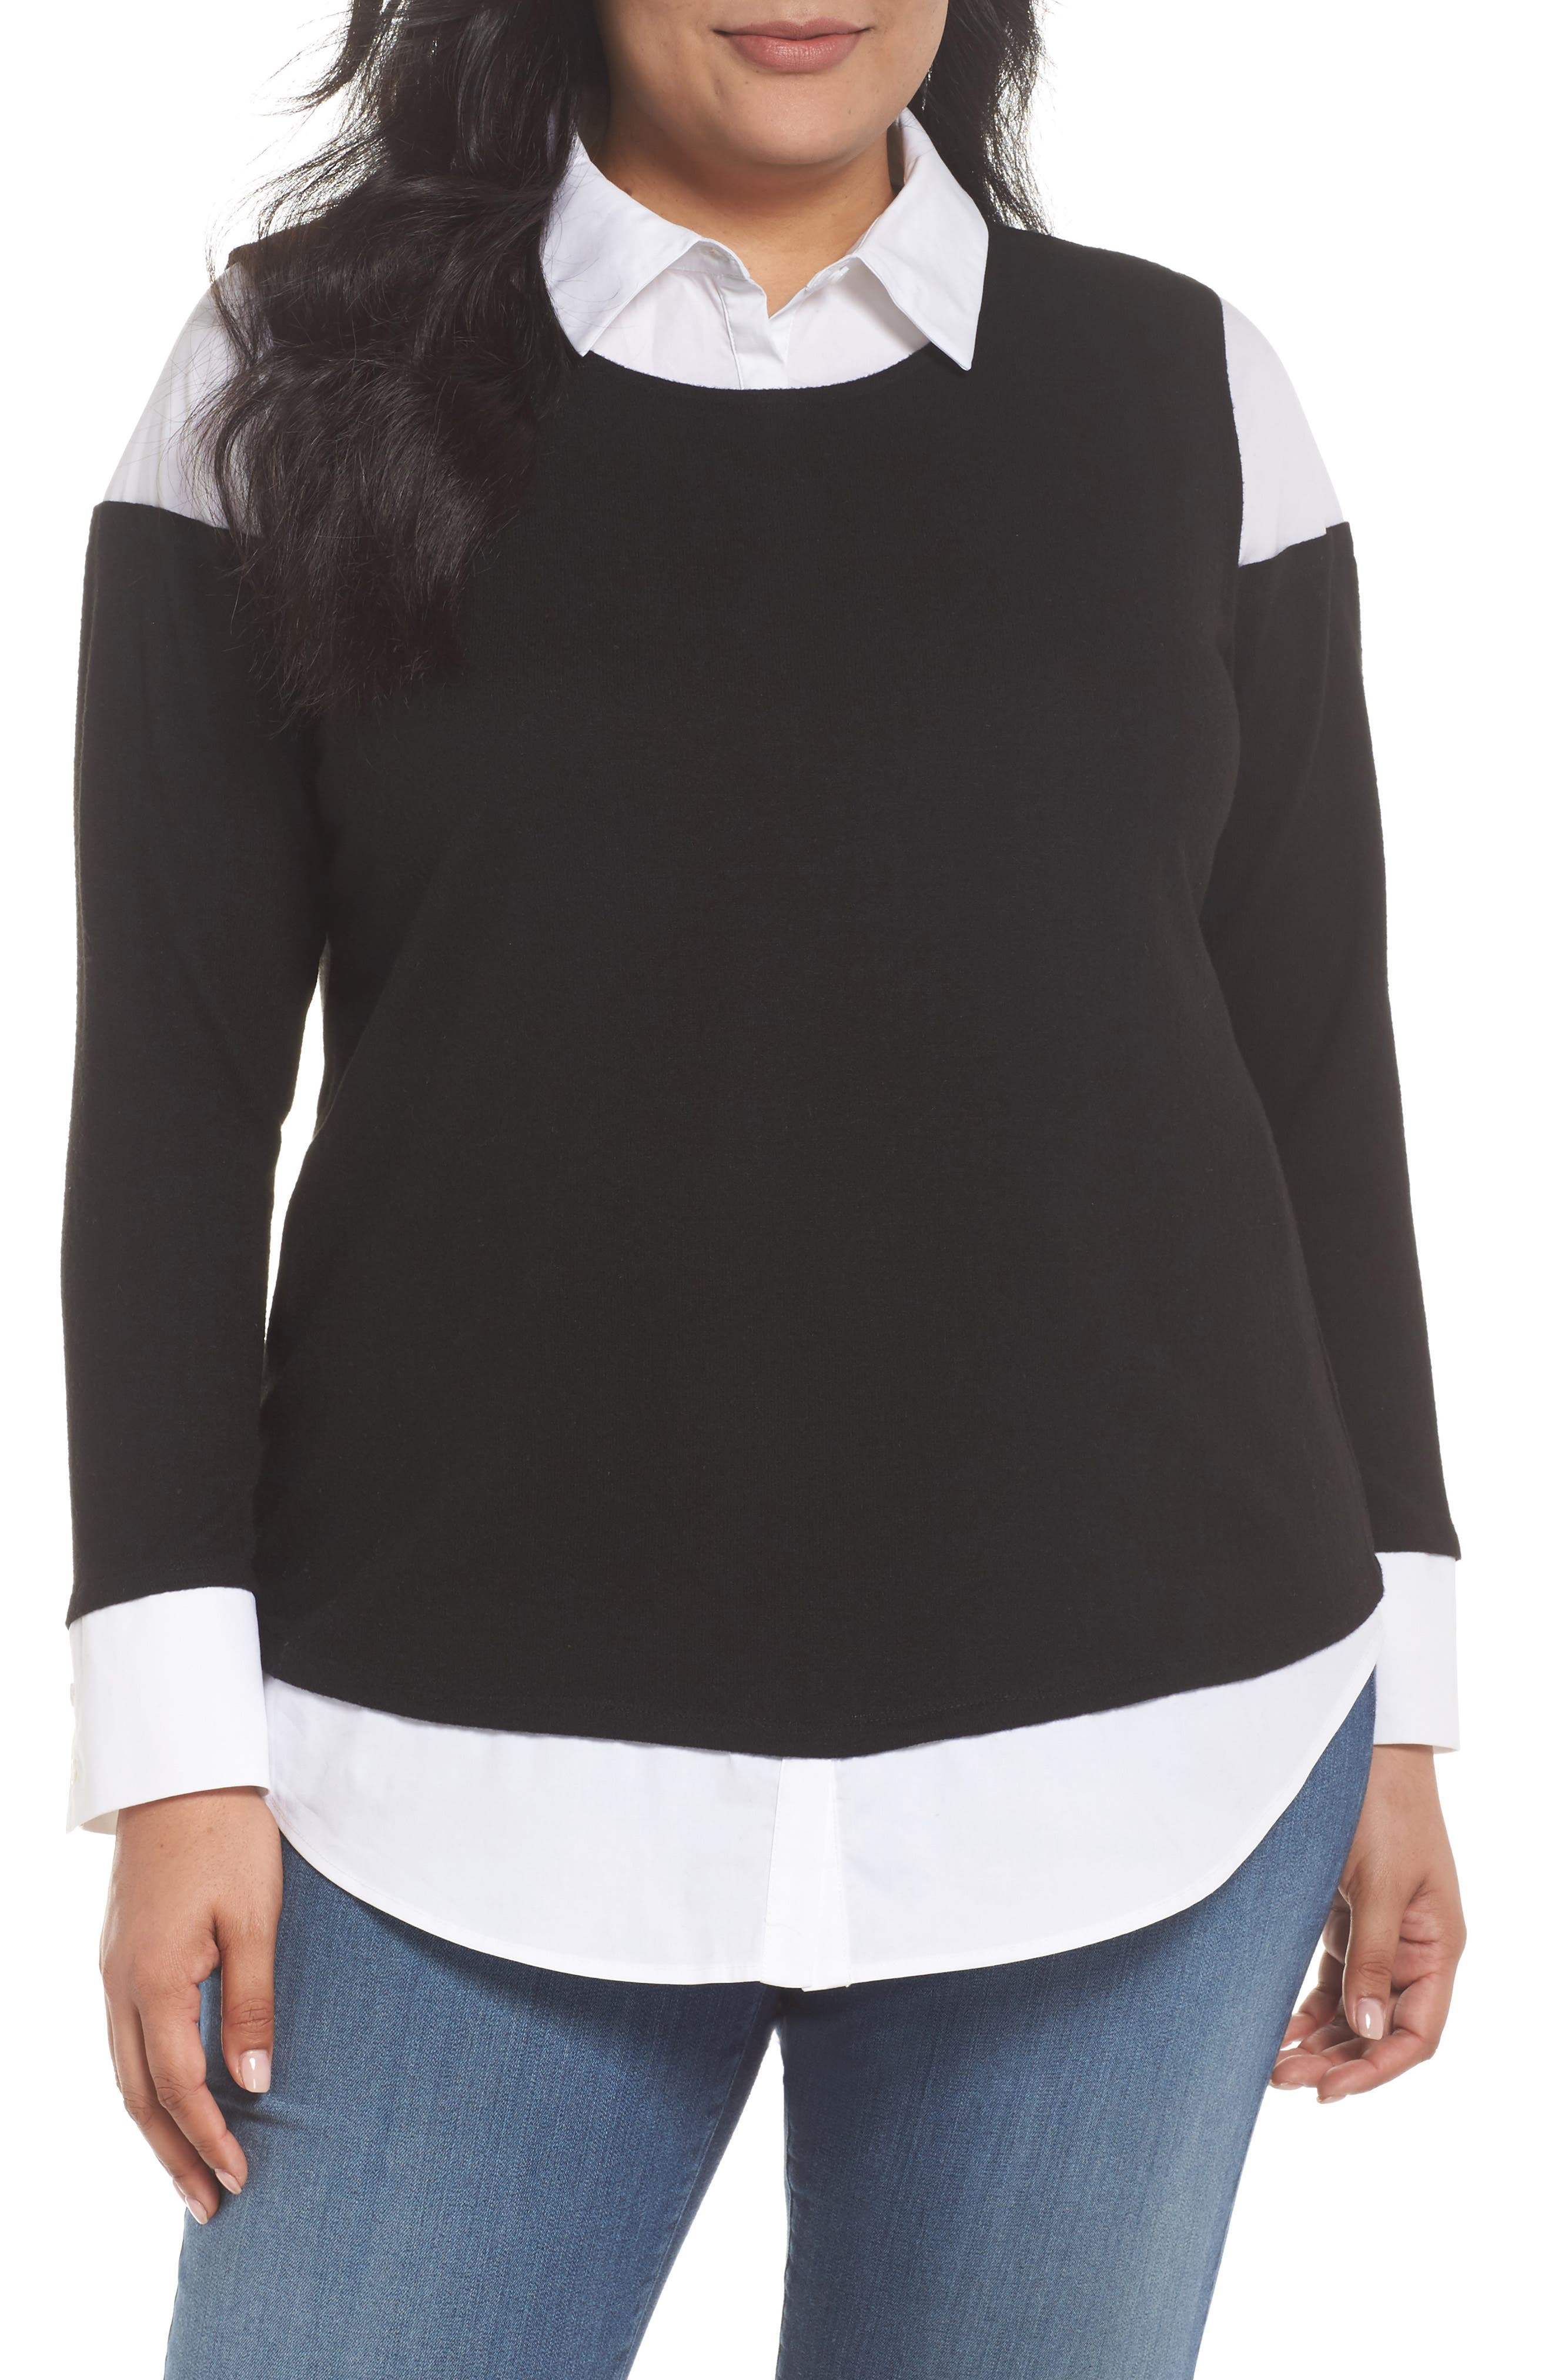 Alternate Image 1 Selected - Vince Camuto Mix Media Brushed Jersey Top (Plus Size)